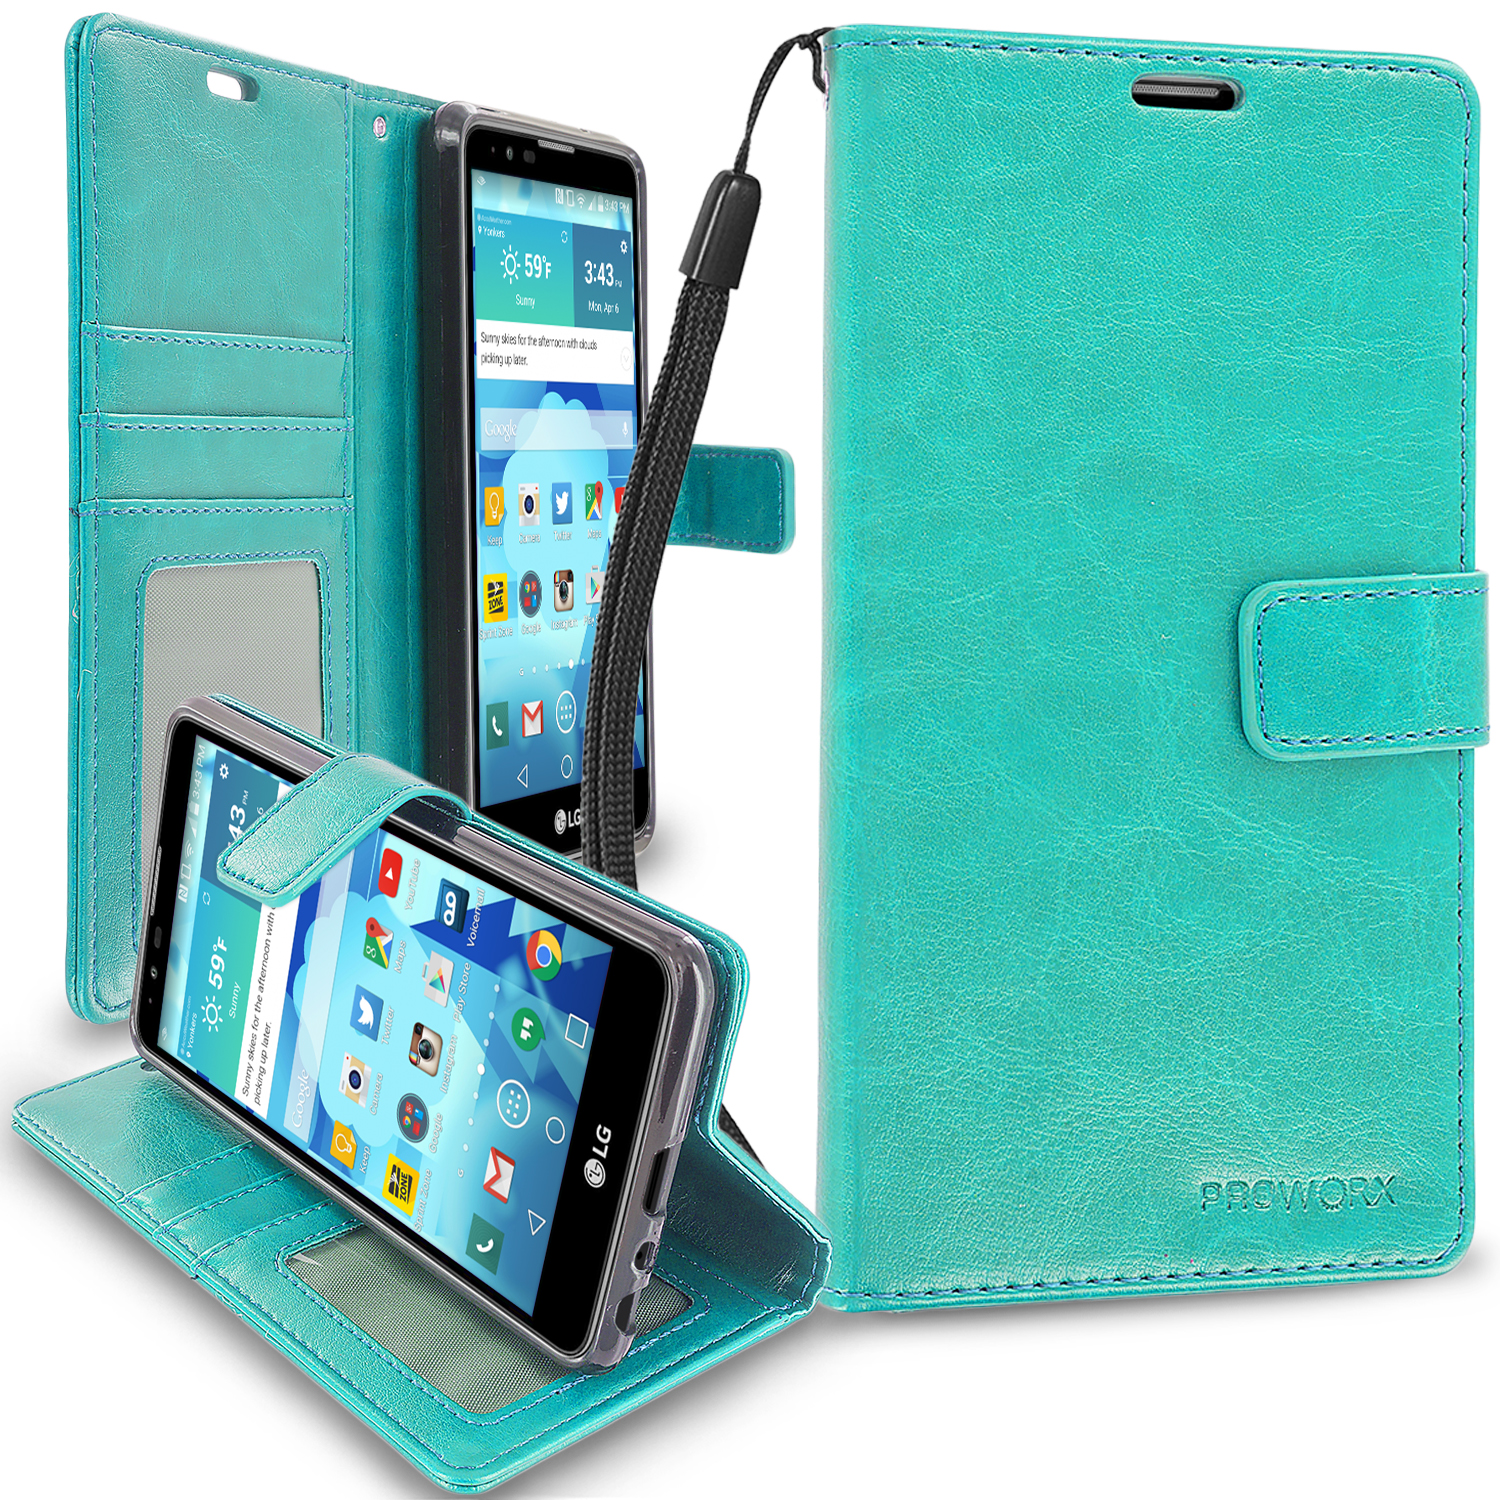 LG Stylo 2 LS775 Mint Green ProWorx Wallet Case Luxury PU Leather Case Cover With Card Slots & Stand